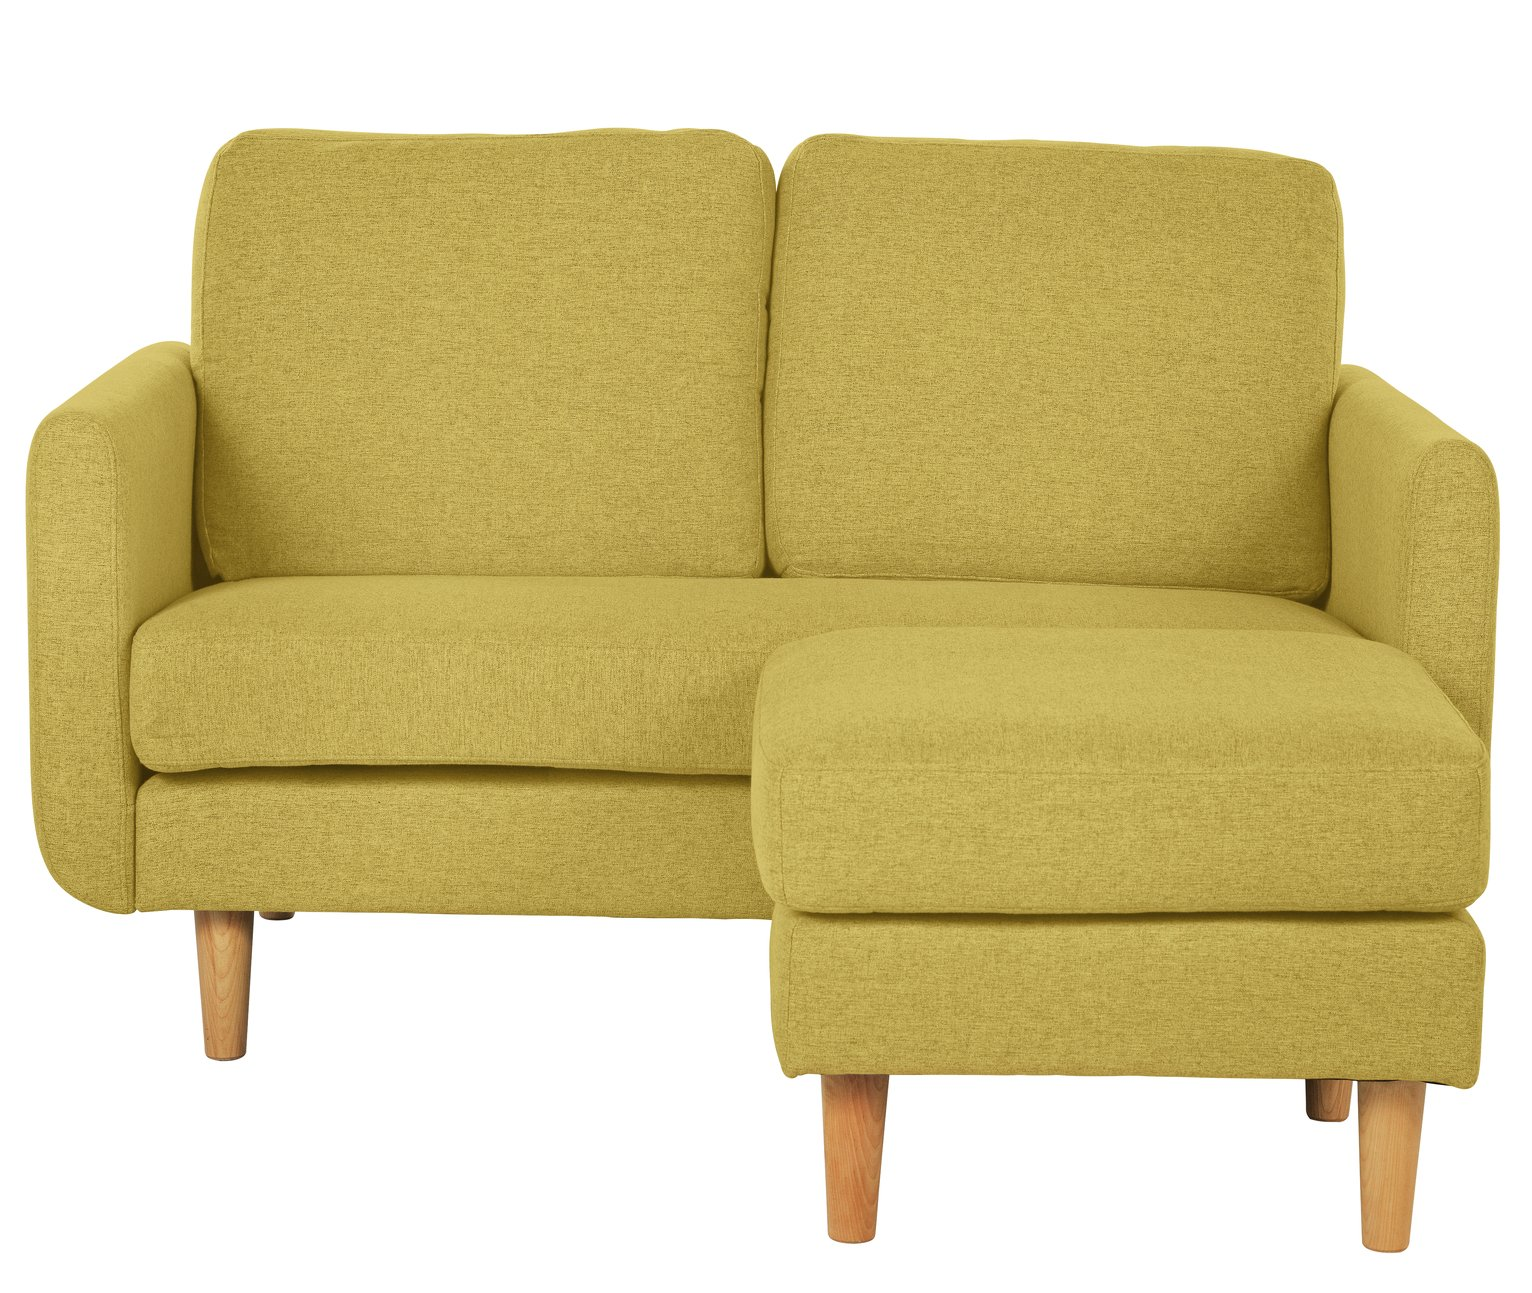 Argos Home Remi 2 Seater Fabric Chaise in a Box - Yellow